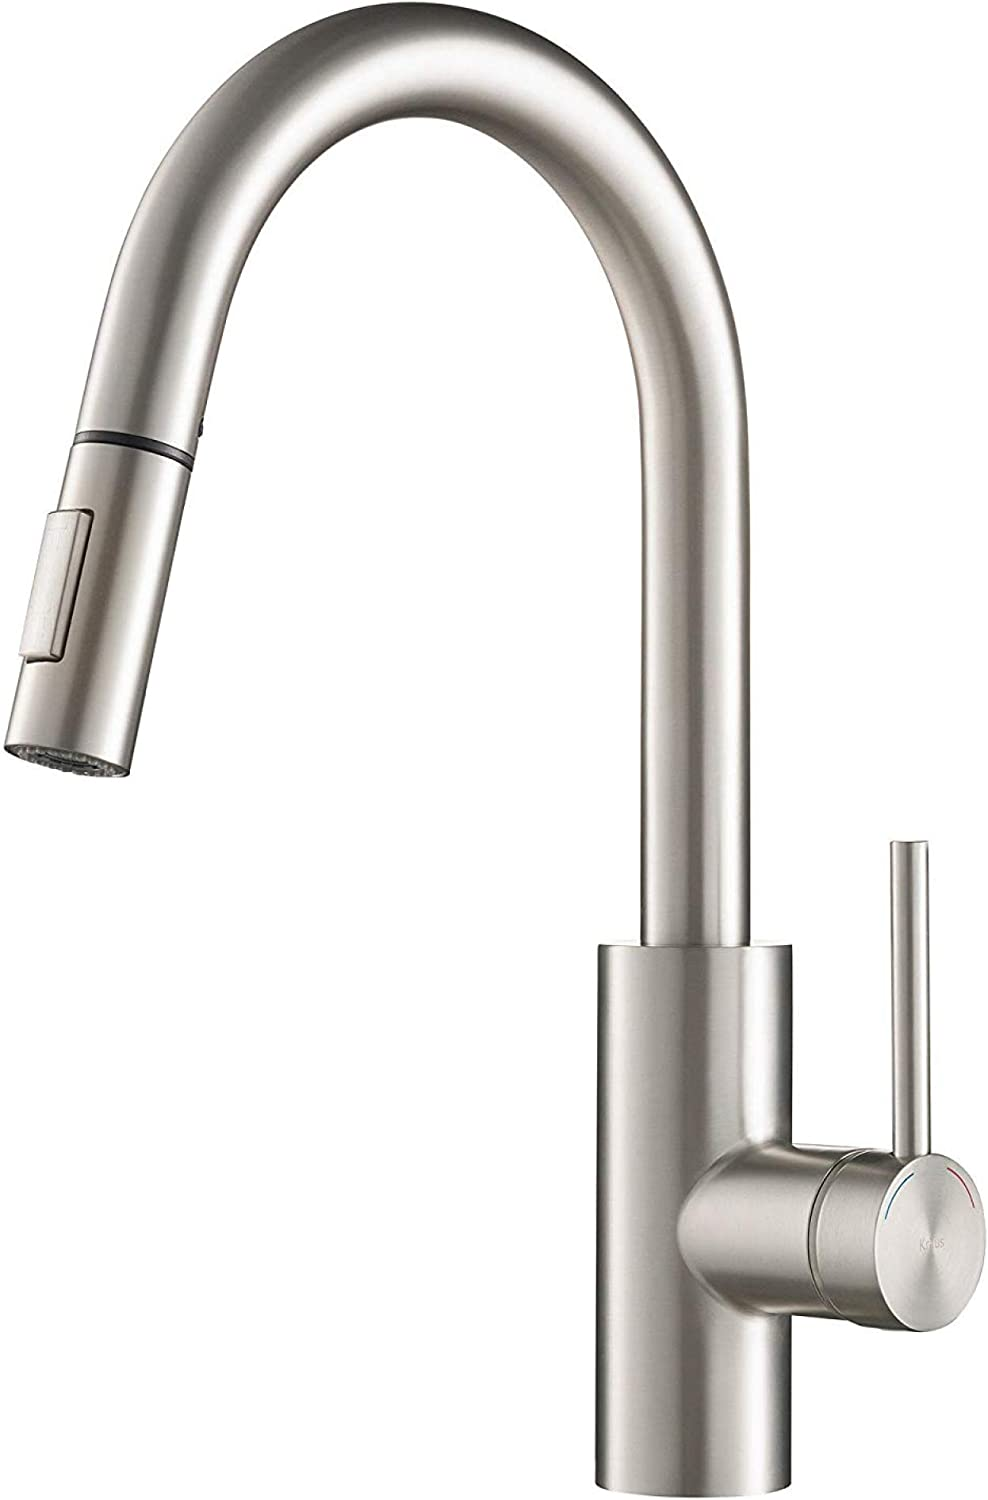 Waterpik TRS 529S 20009490 Elements 5-Mode Showerhead, Brushed Nickel